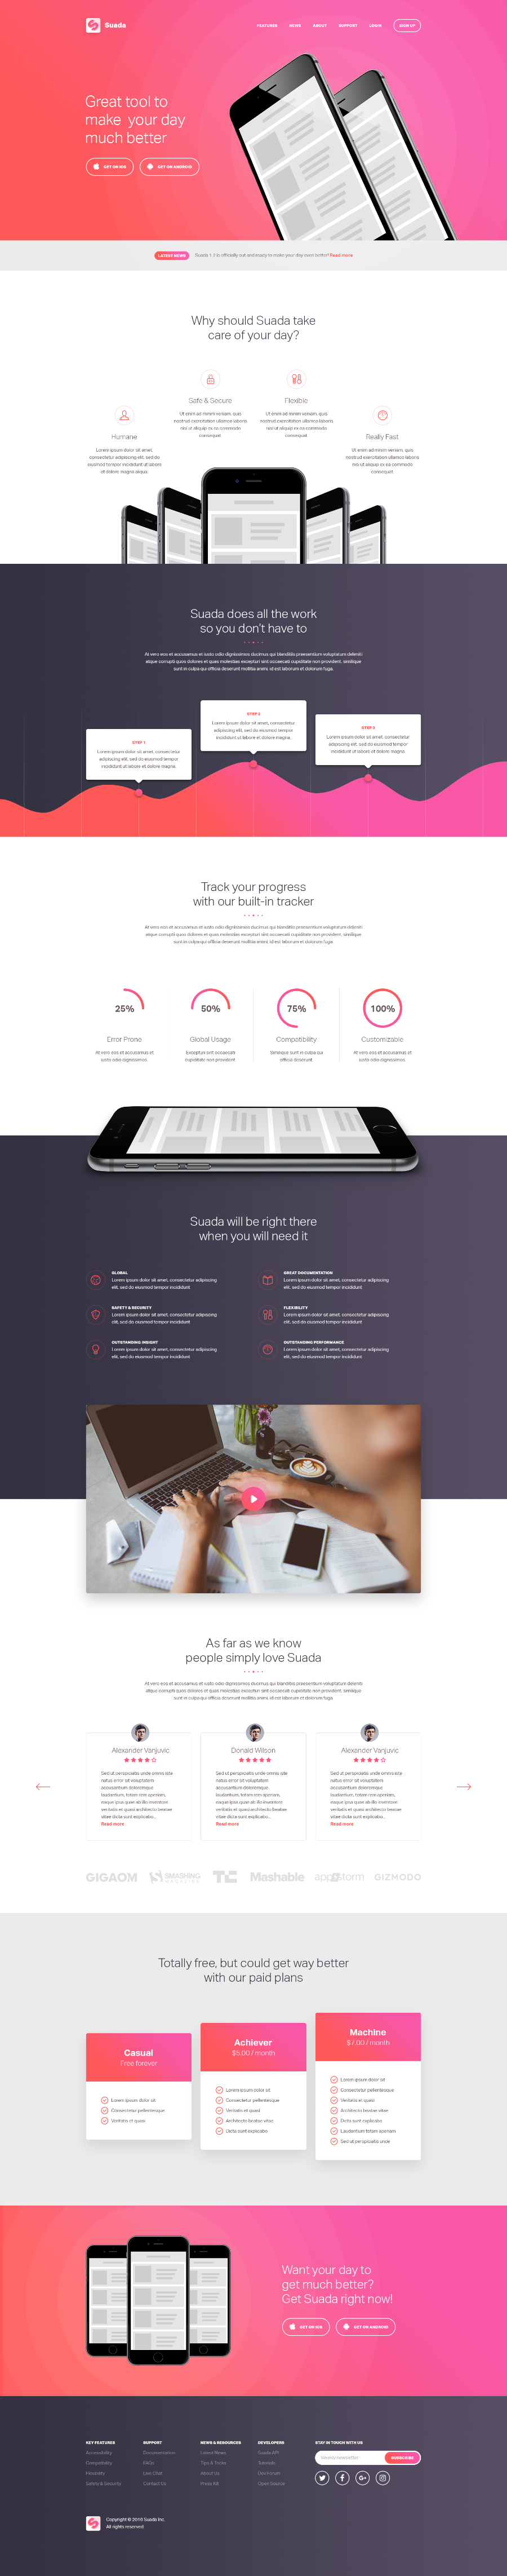 Free PSD Mobile App Landing Page